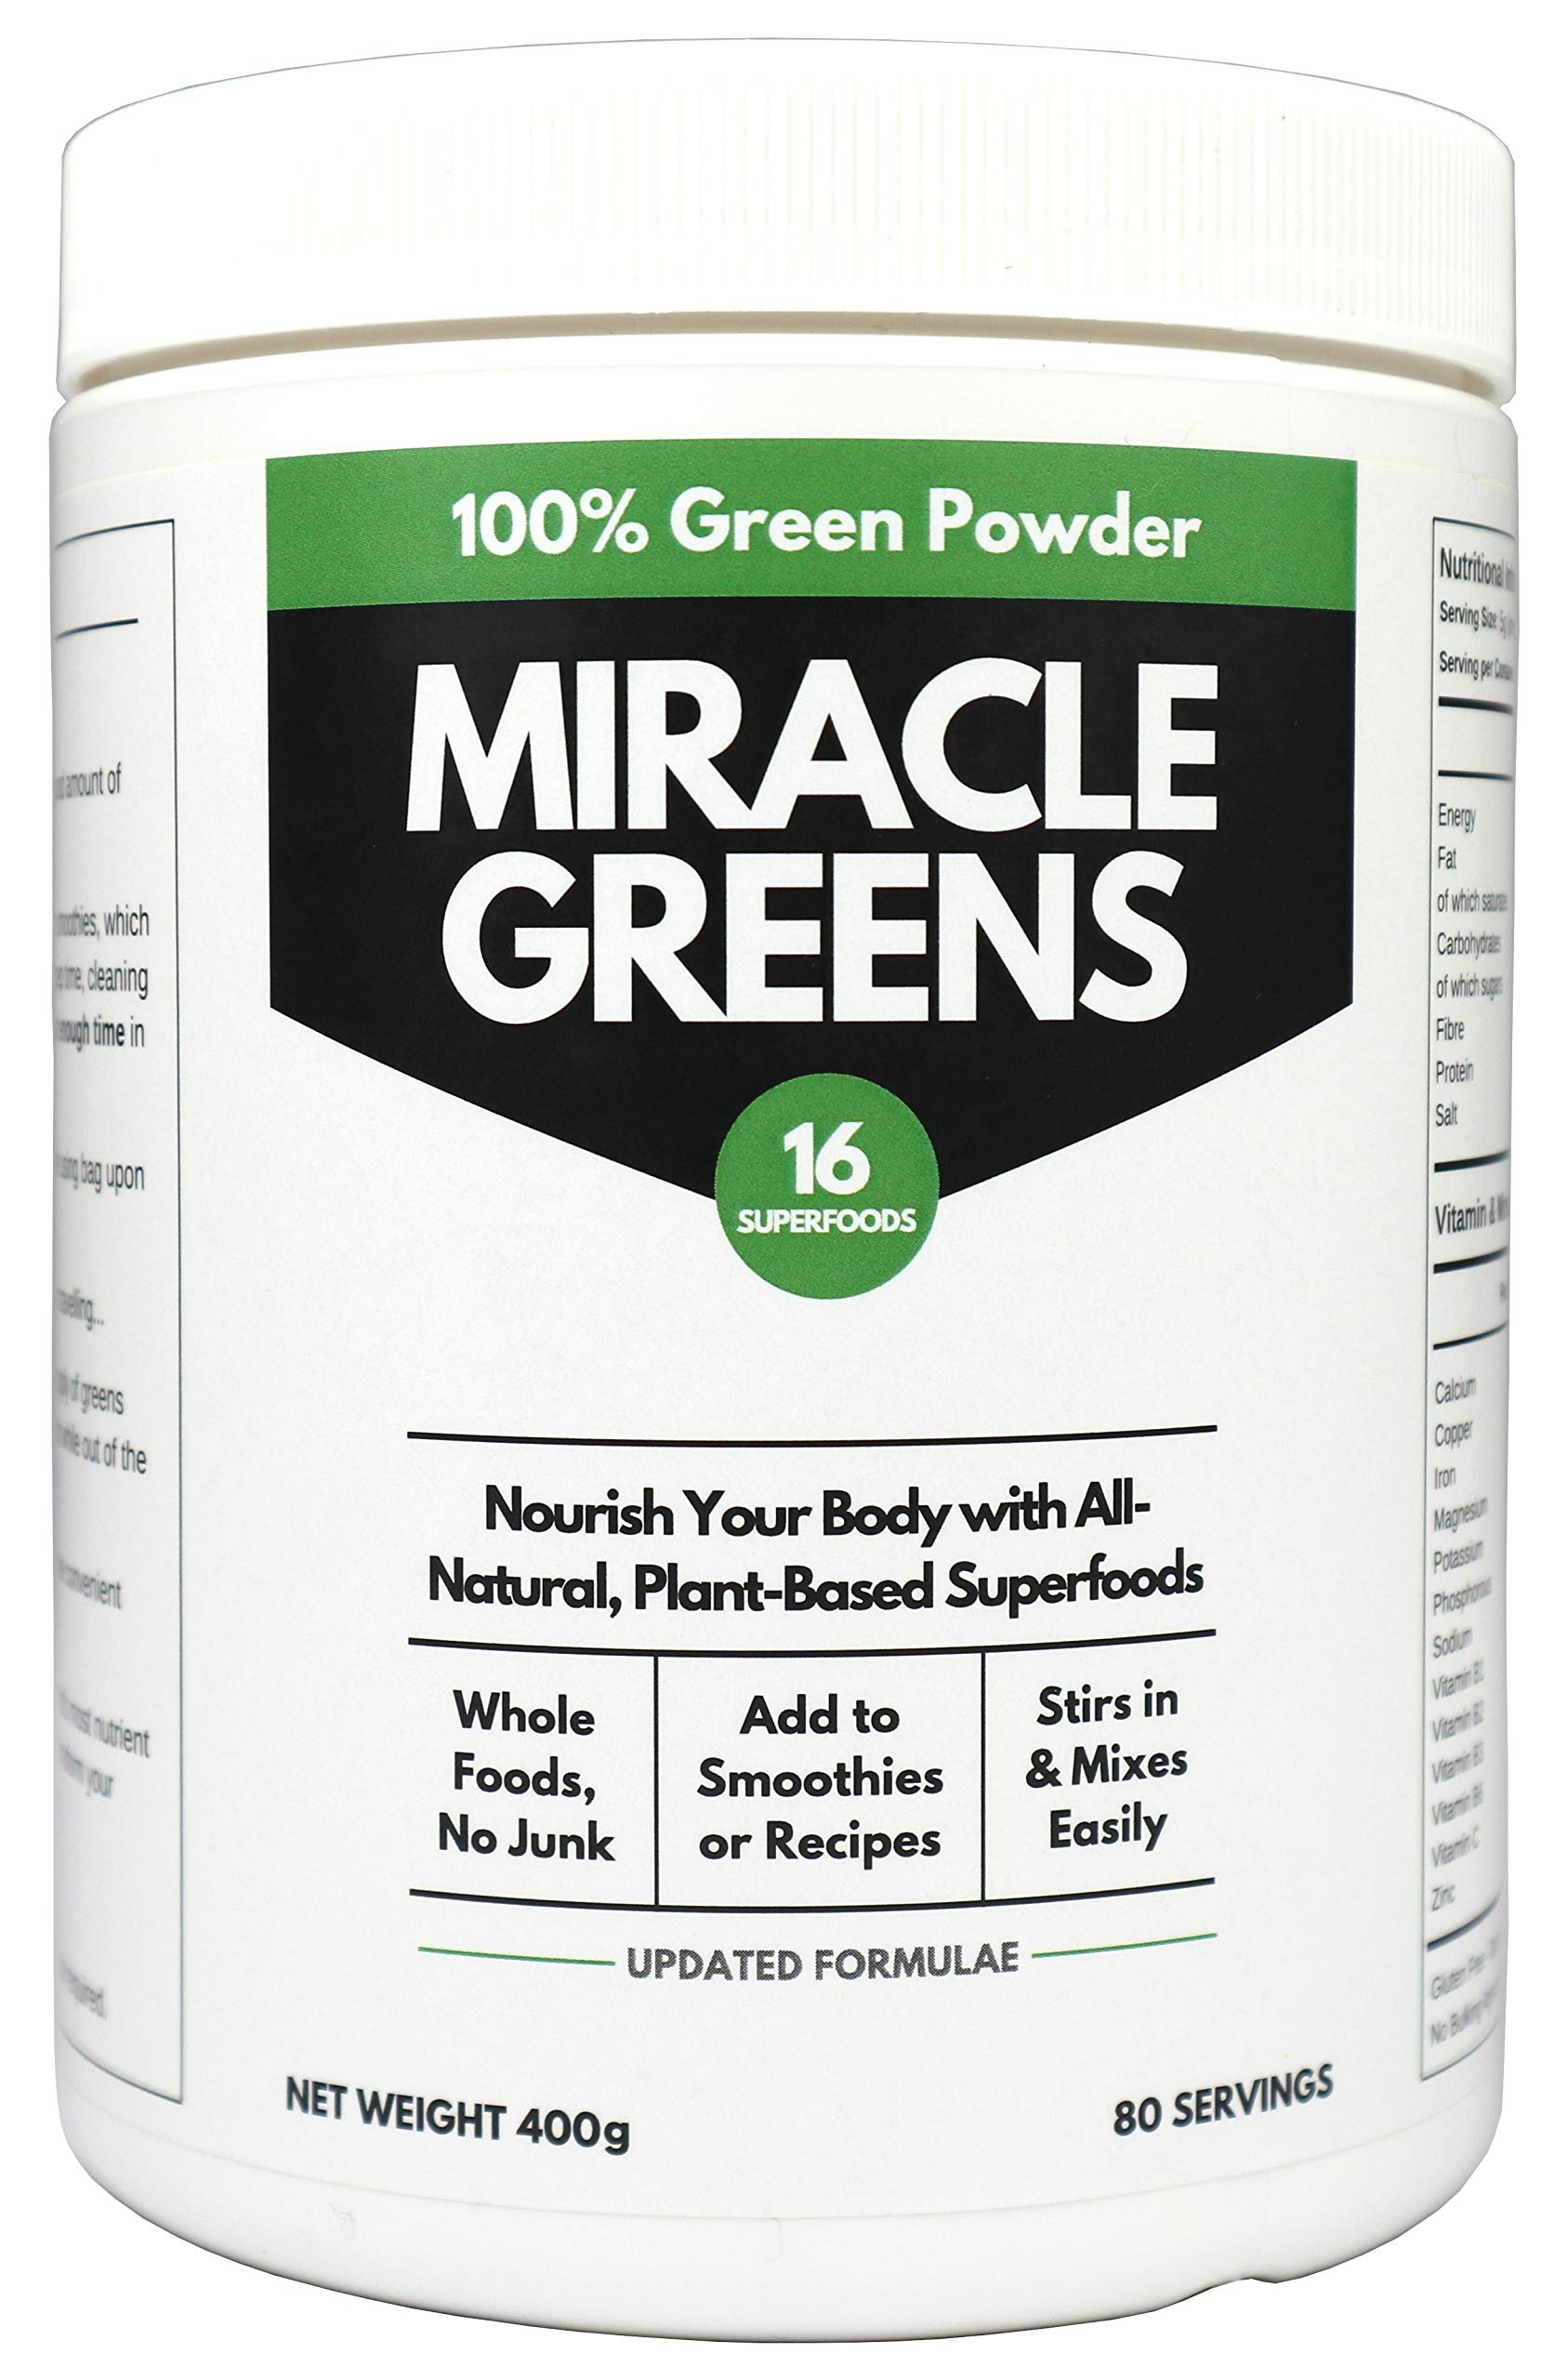 Organic Super Greens Powder (400g) | 16 Superfoods to Protect Your Immune System from Colds and Flu | Researched and Tested | UK Made Super Greens for Nutrition, to Boost Immunity and Detox